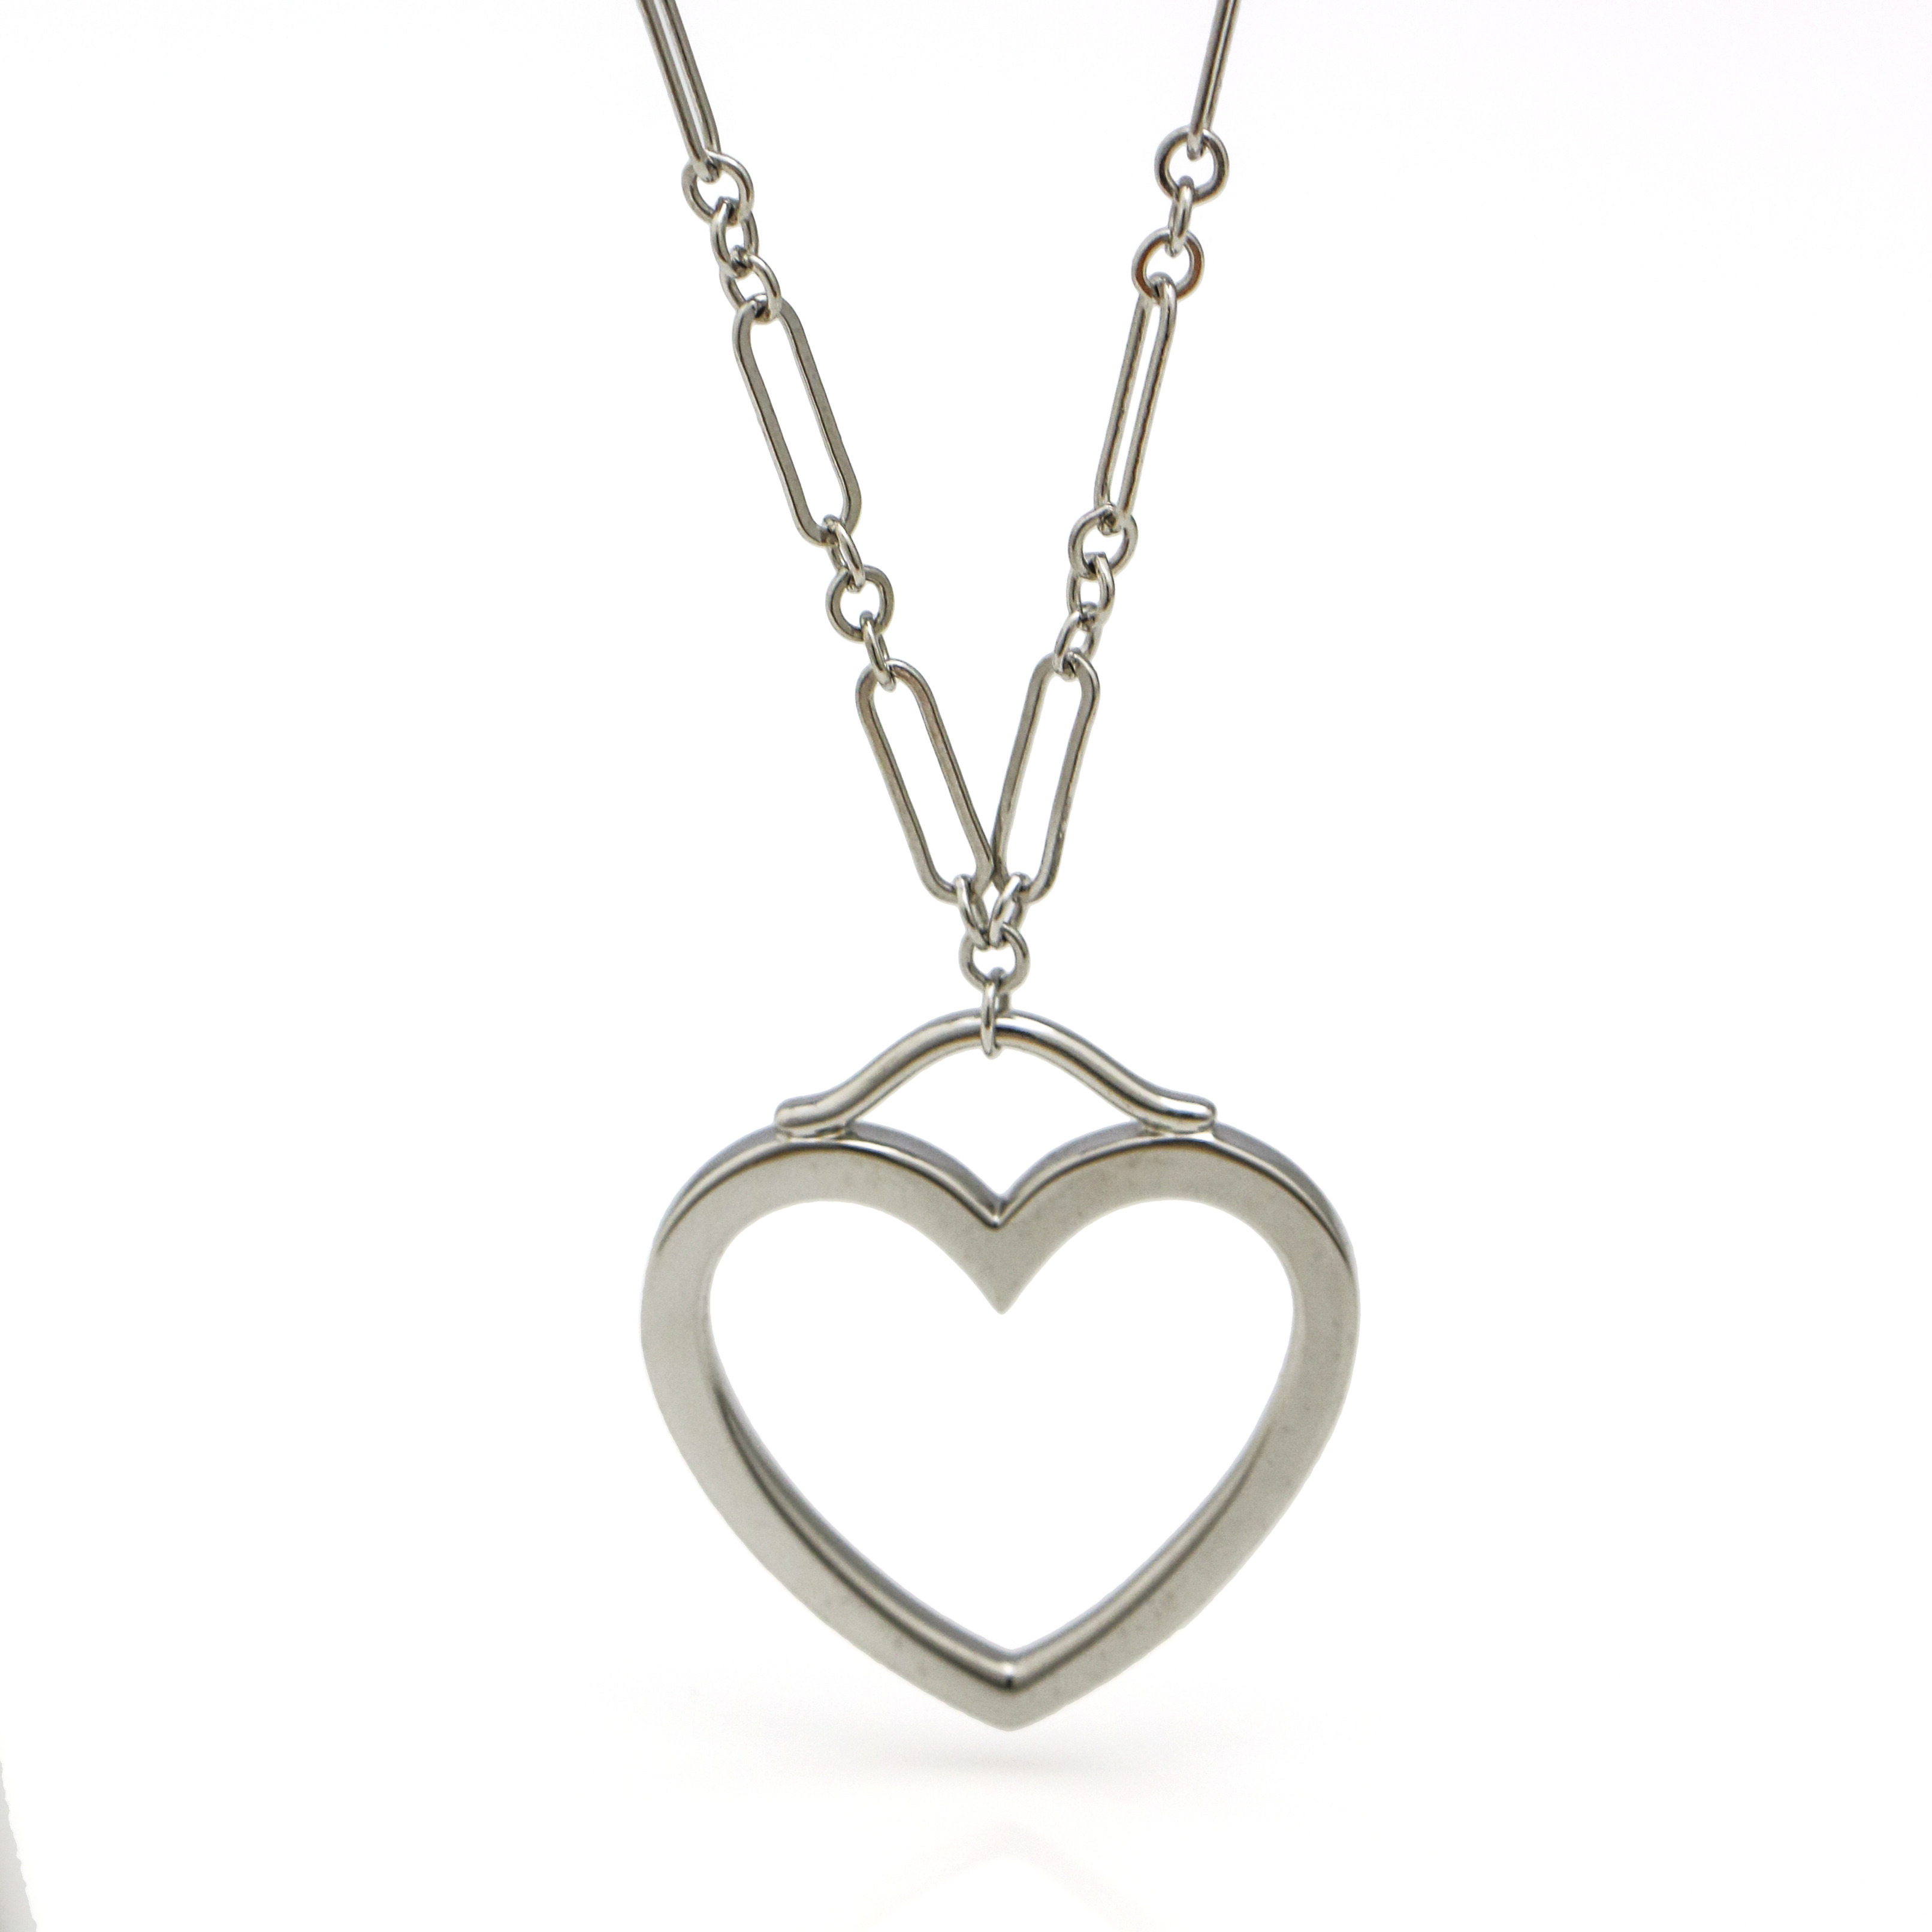 4b556dcc7 Details about Tiffany & Co. 18k White Gold Large Heart Pendant Necklace